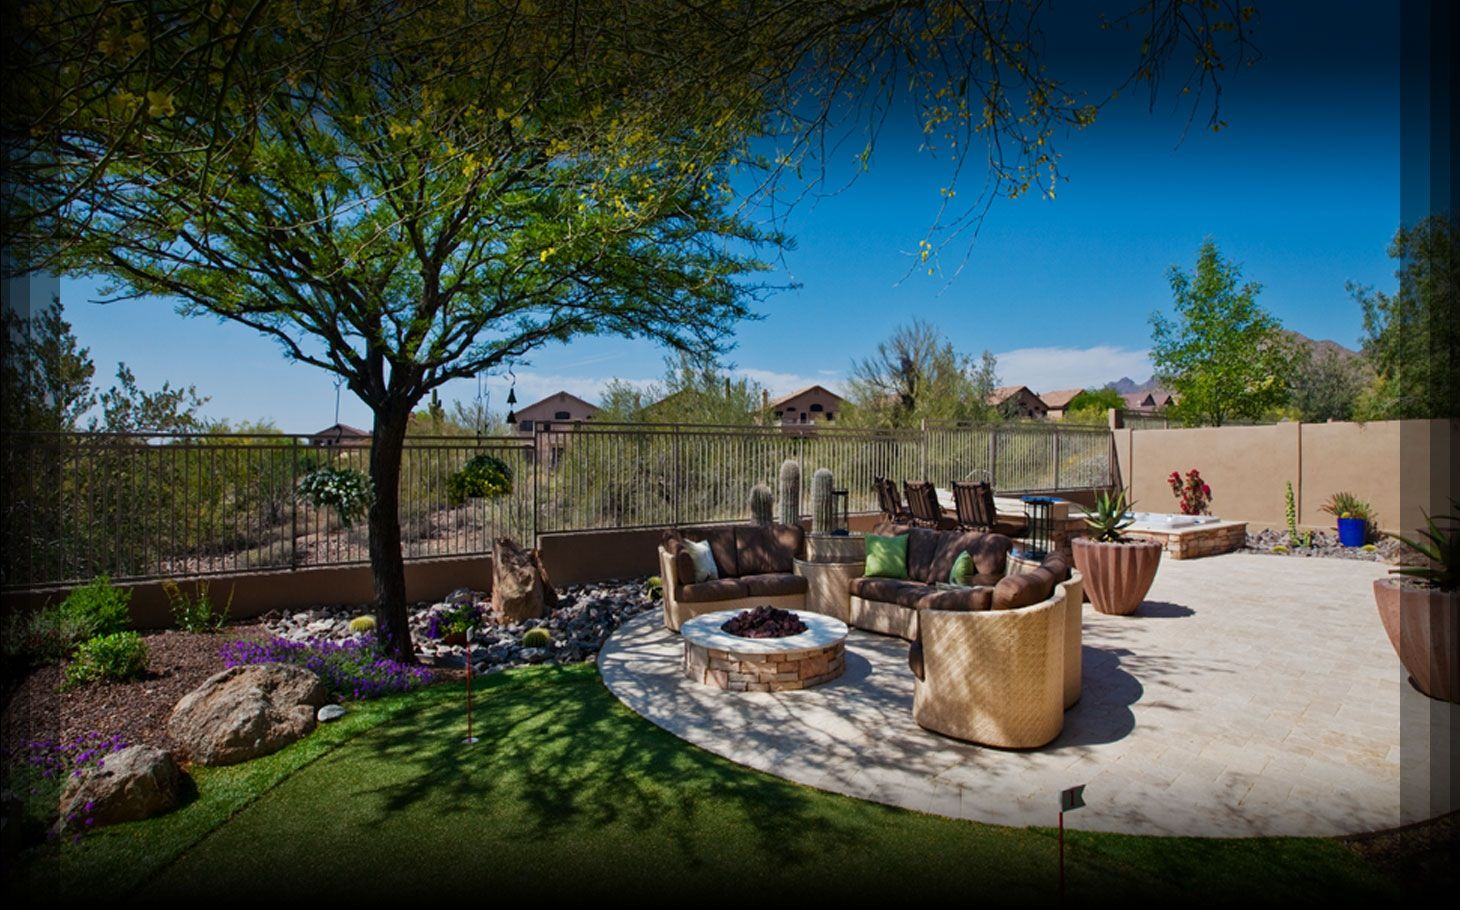 Shade Trees Near Patio | Share | Outdoor spaces | Pinterest on pool garden ideas, small desert backyard ideas, desert backyard landscaping plans, az backyard landscaping ideas, desert yard design ideas, beautiful backyard landscaping ideas, small backyard pools design ideas, backyard privacy landscaping ideas, desert oasis backyard pool ideas, desert front yard, desert landscaping designs, front yard landscape design ideas, cheap backyard landscaping ideas, simple backyard landscaping ideas, desert courtyard landscaping, arizona backyard landscaping ideas, desert backyard pool design, desert garden ideas, pool privacy ideas, desert landscape,